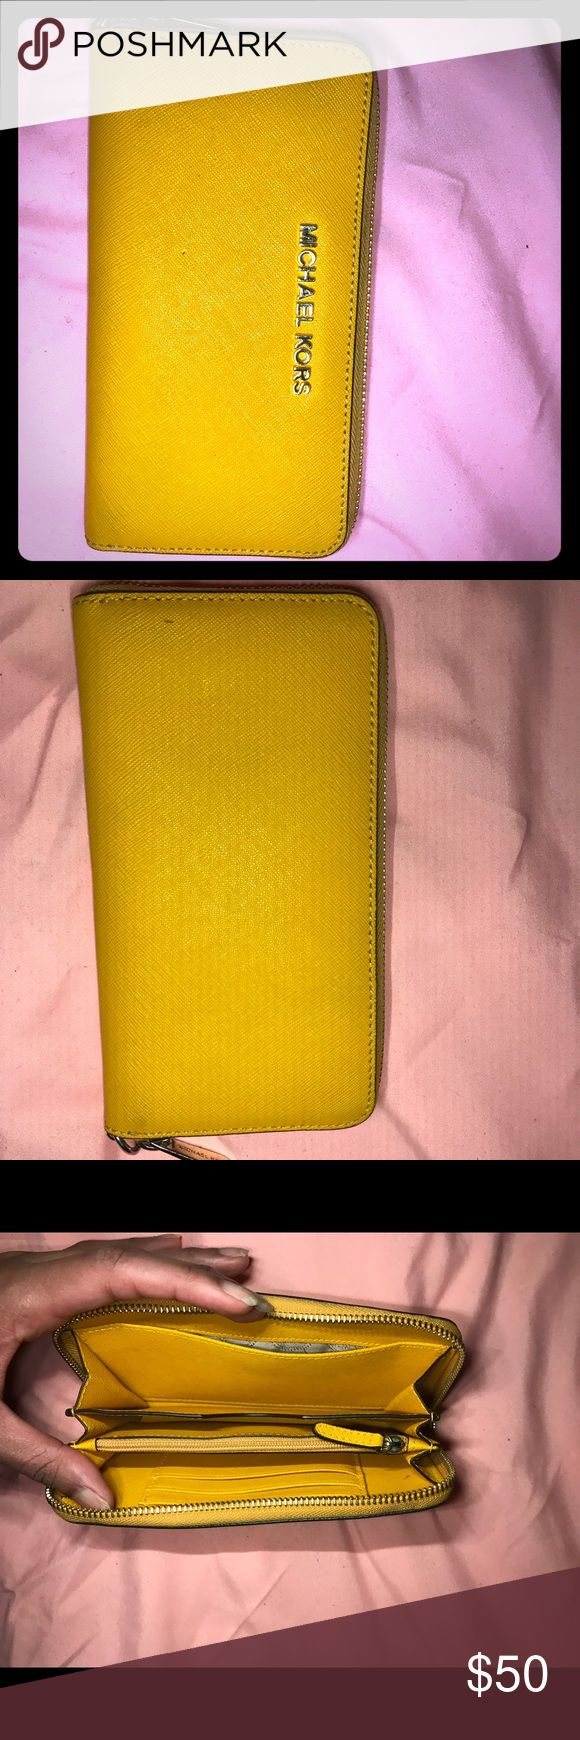 Michael Kors Wallet (with cell phone pocket) This wallet have been gently used. It has a pocket for cell phones, a cash flap, coin pocket and 3 slots for cards/ID. Bright yellow with gold accents. Michael Kors Bags Wallets